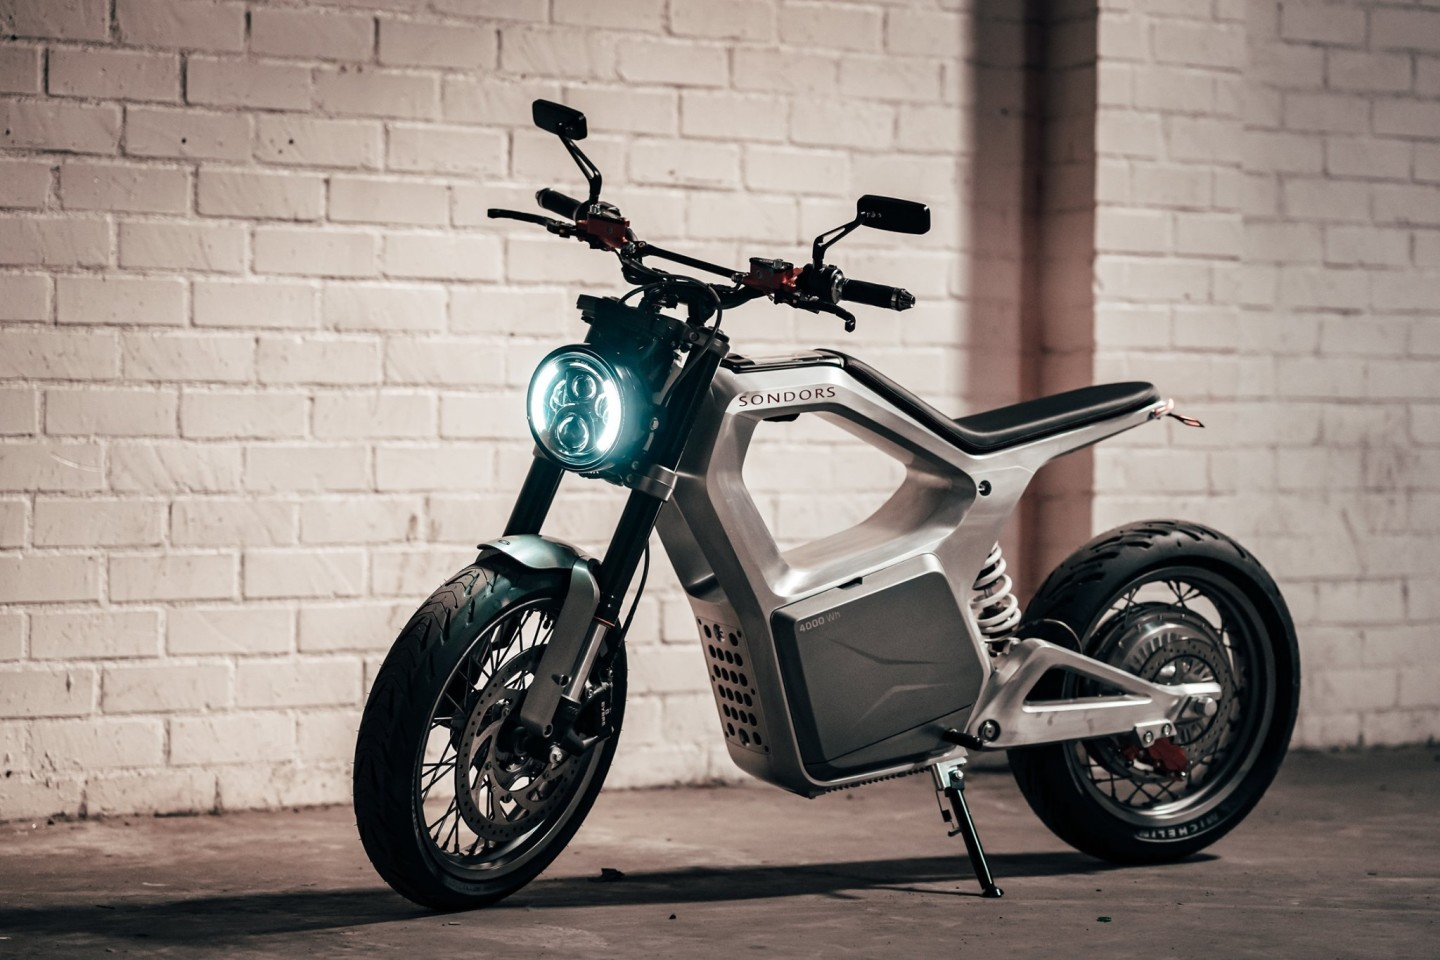 The Metacycle is the first electric motorcycle from Sondors